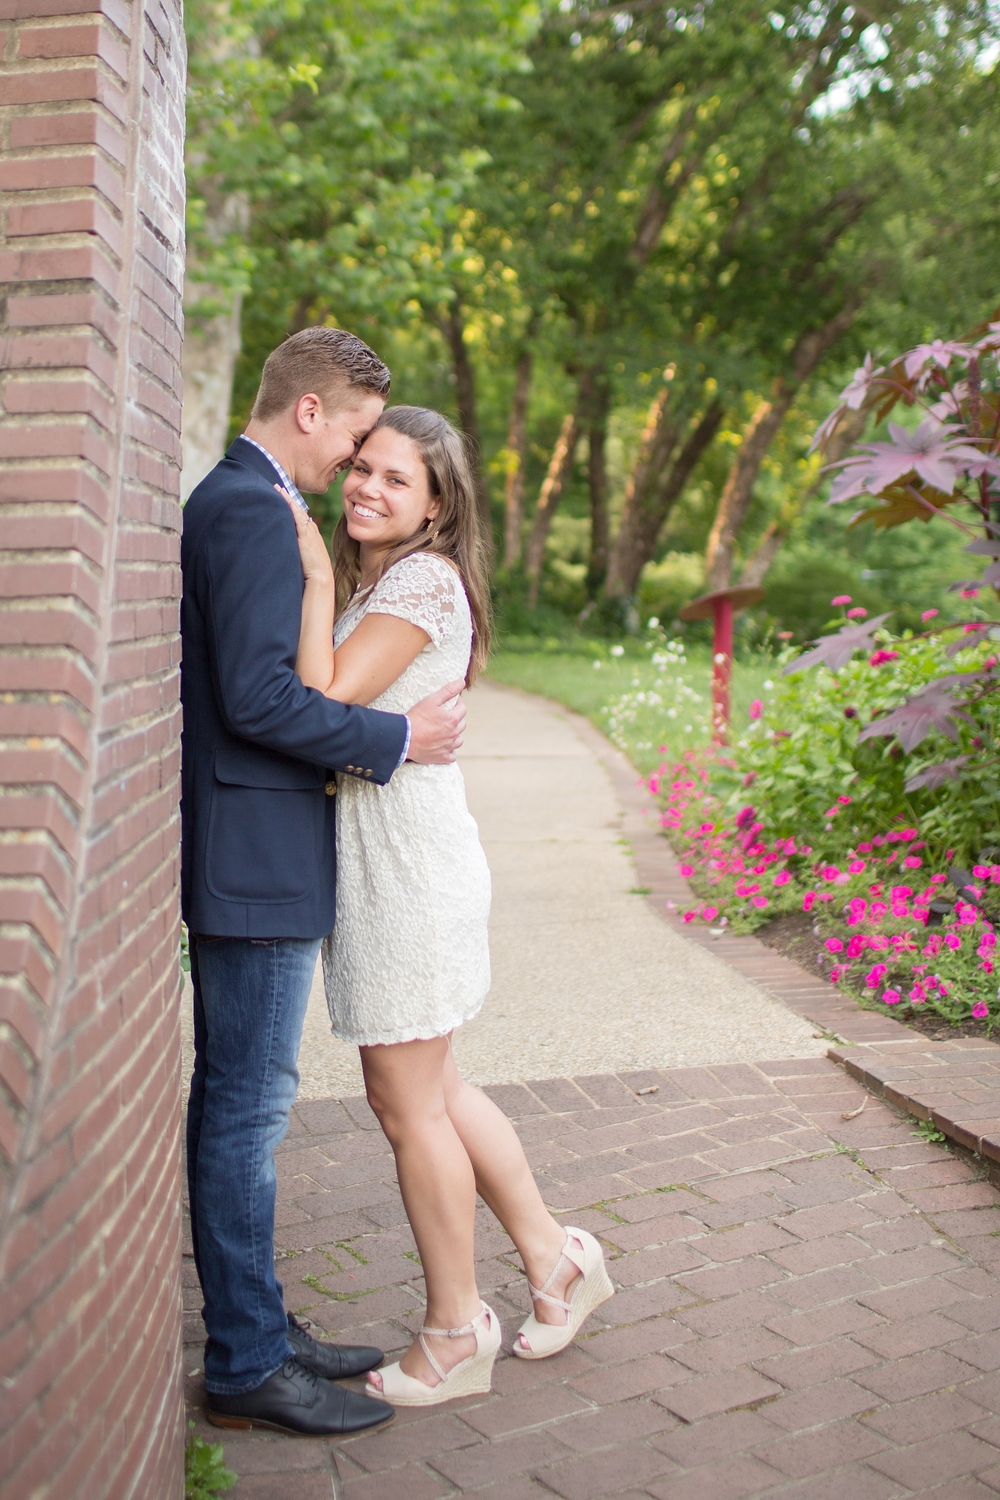 Clare & Nick Engagement-173_anna grace photography brookside gardens maryland engagement photographer photo.jpg